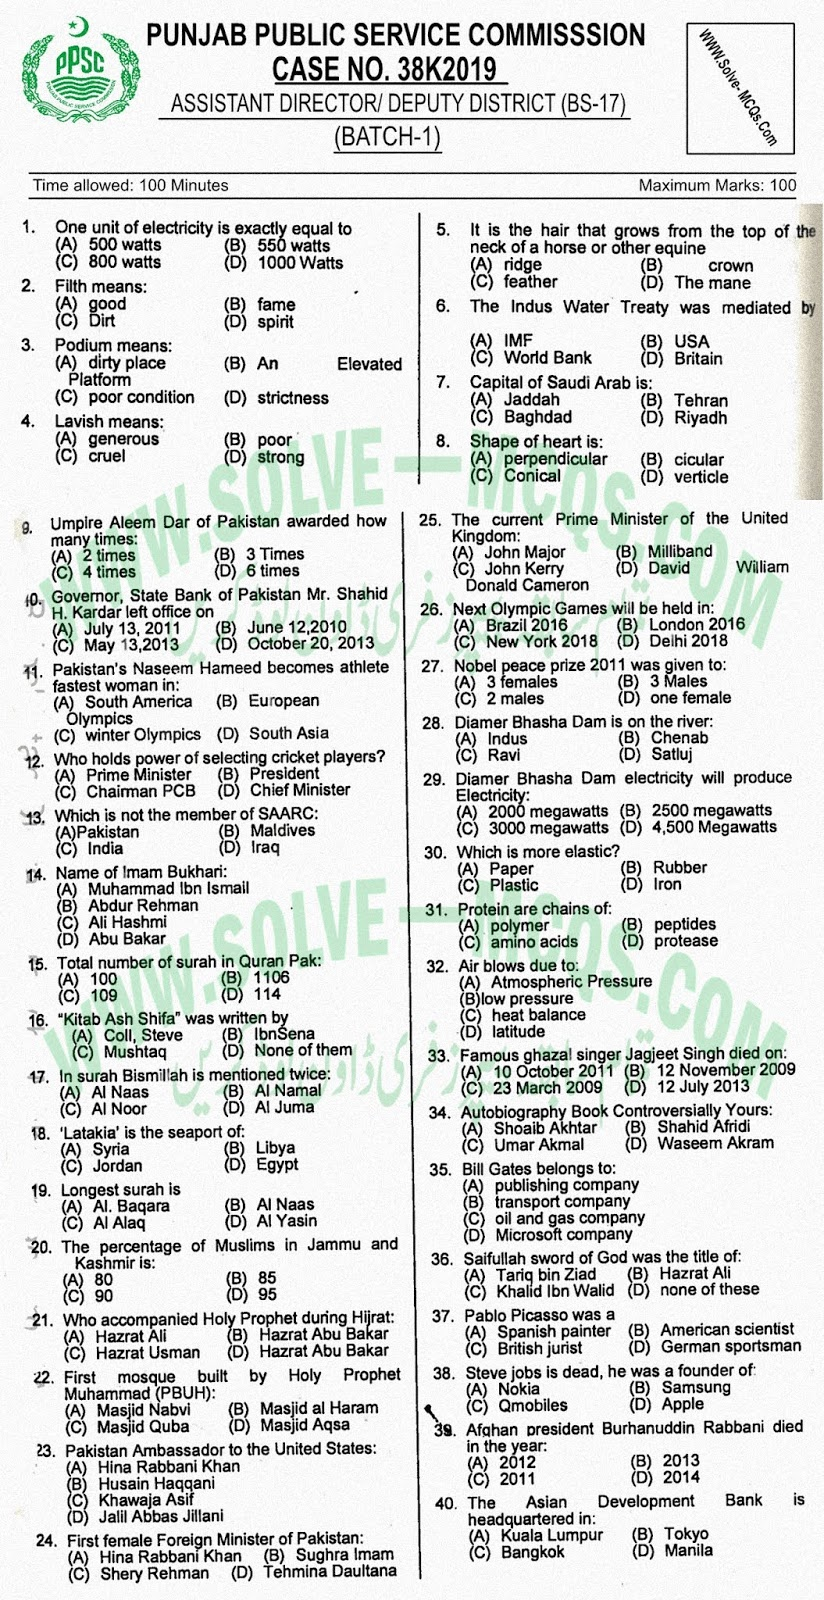 Punjab Board Assistant Dirctors Jobs Test Preparations With Past Papers